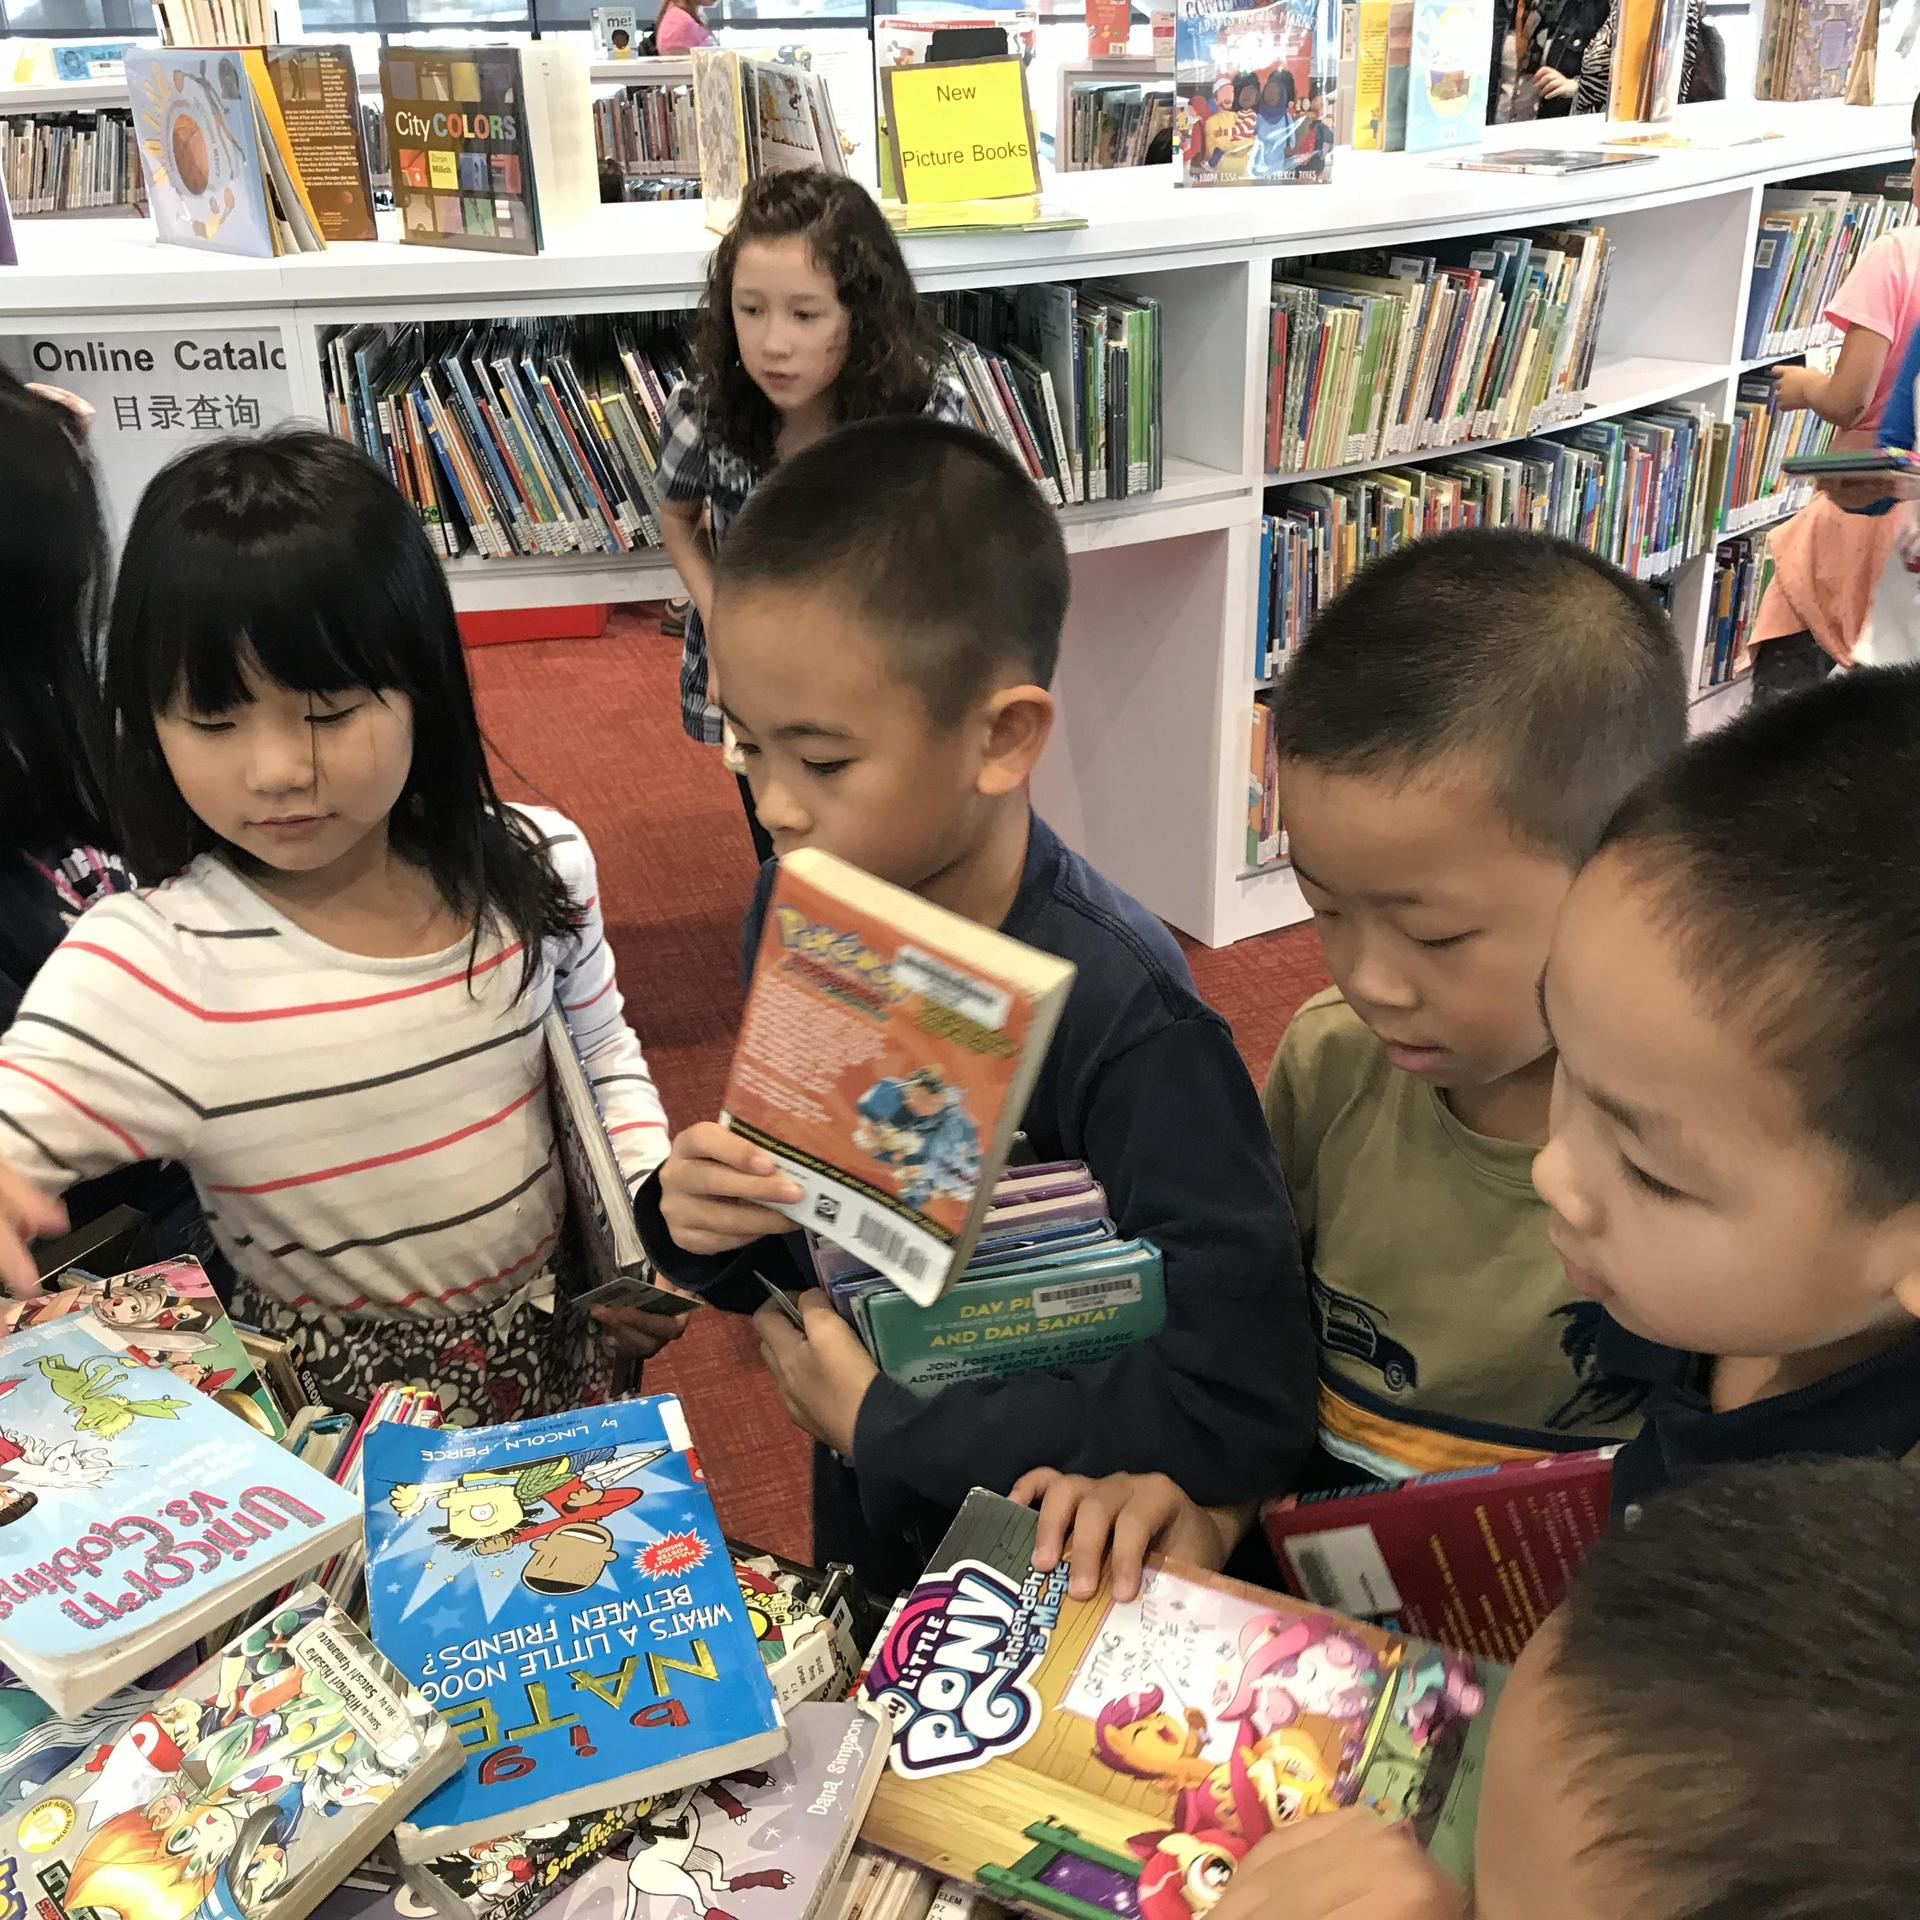 Visiting Chinatown Library